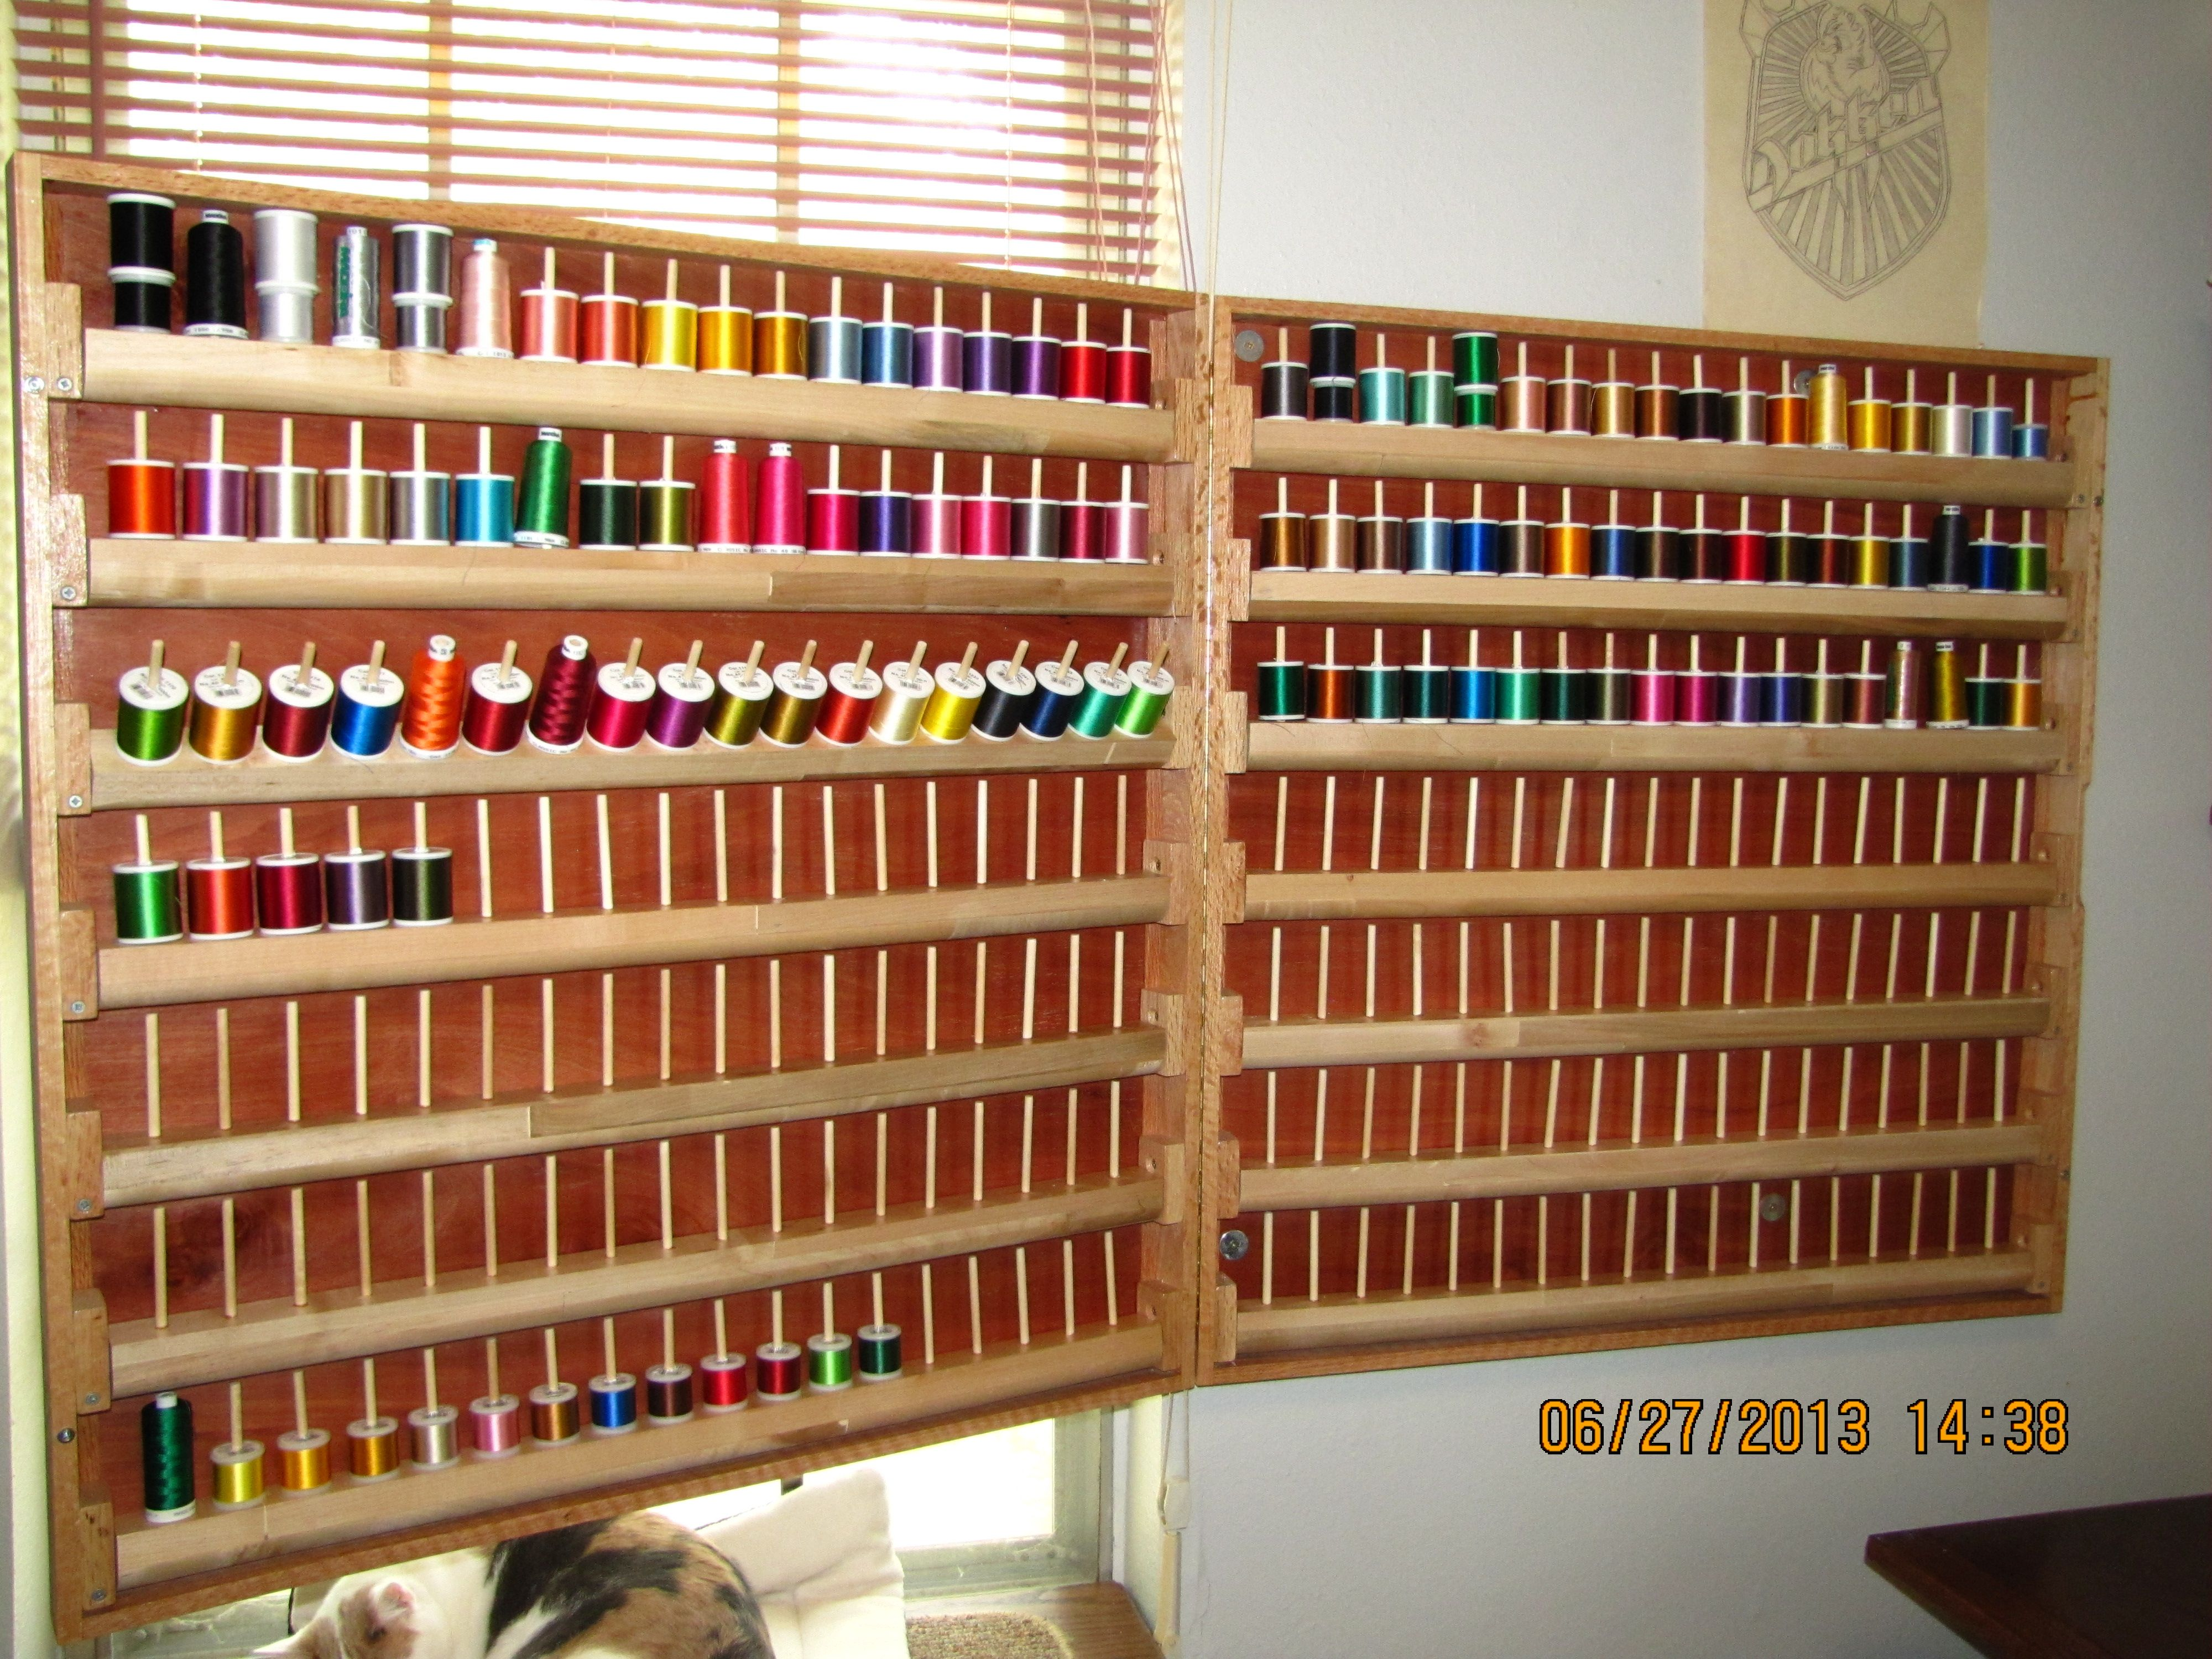 252 Spool Embroidery Thread Rack With Pivoting Spool